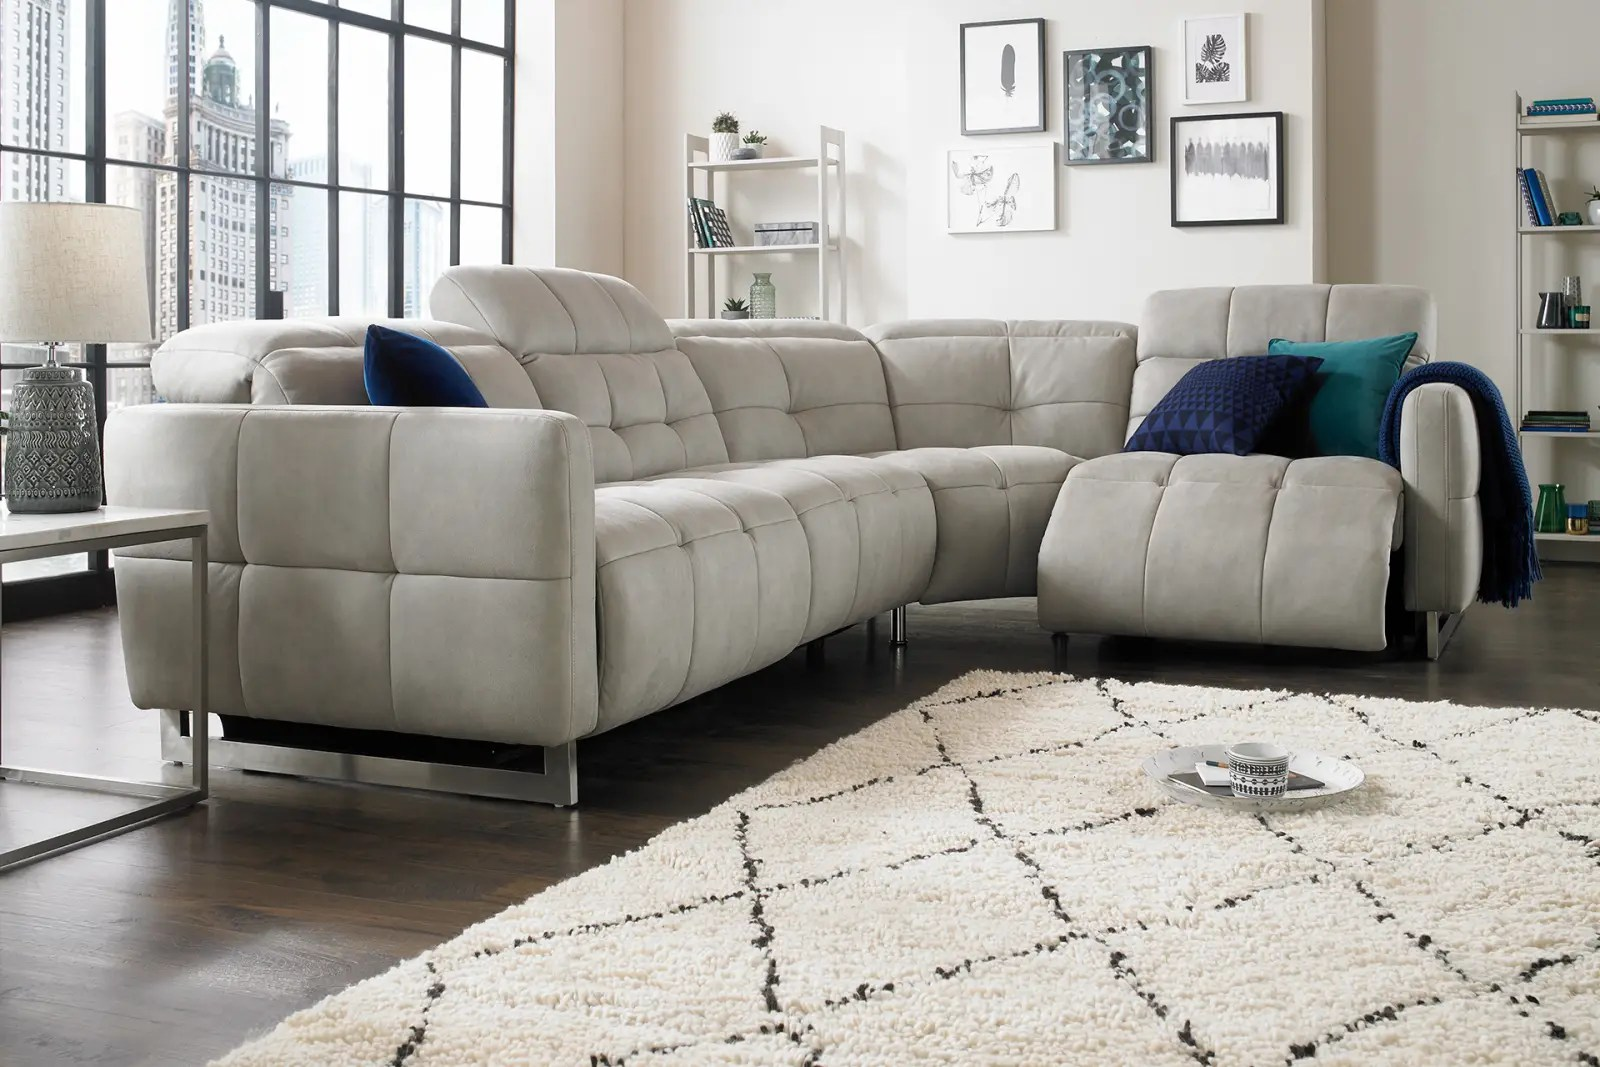 Sofology Richmonde Allegri Sofology Homes In 2018 T Sofa Fabric Sofa And